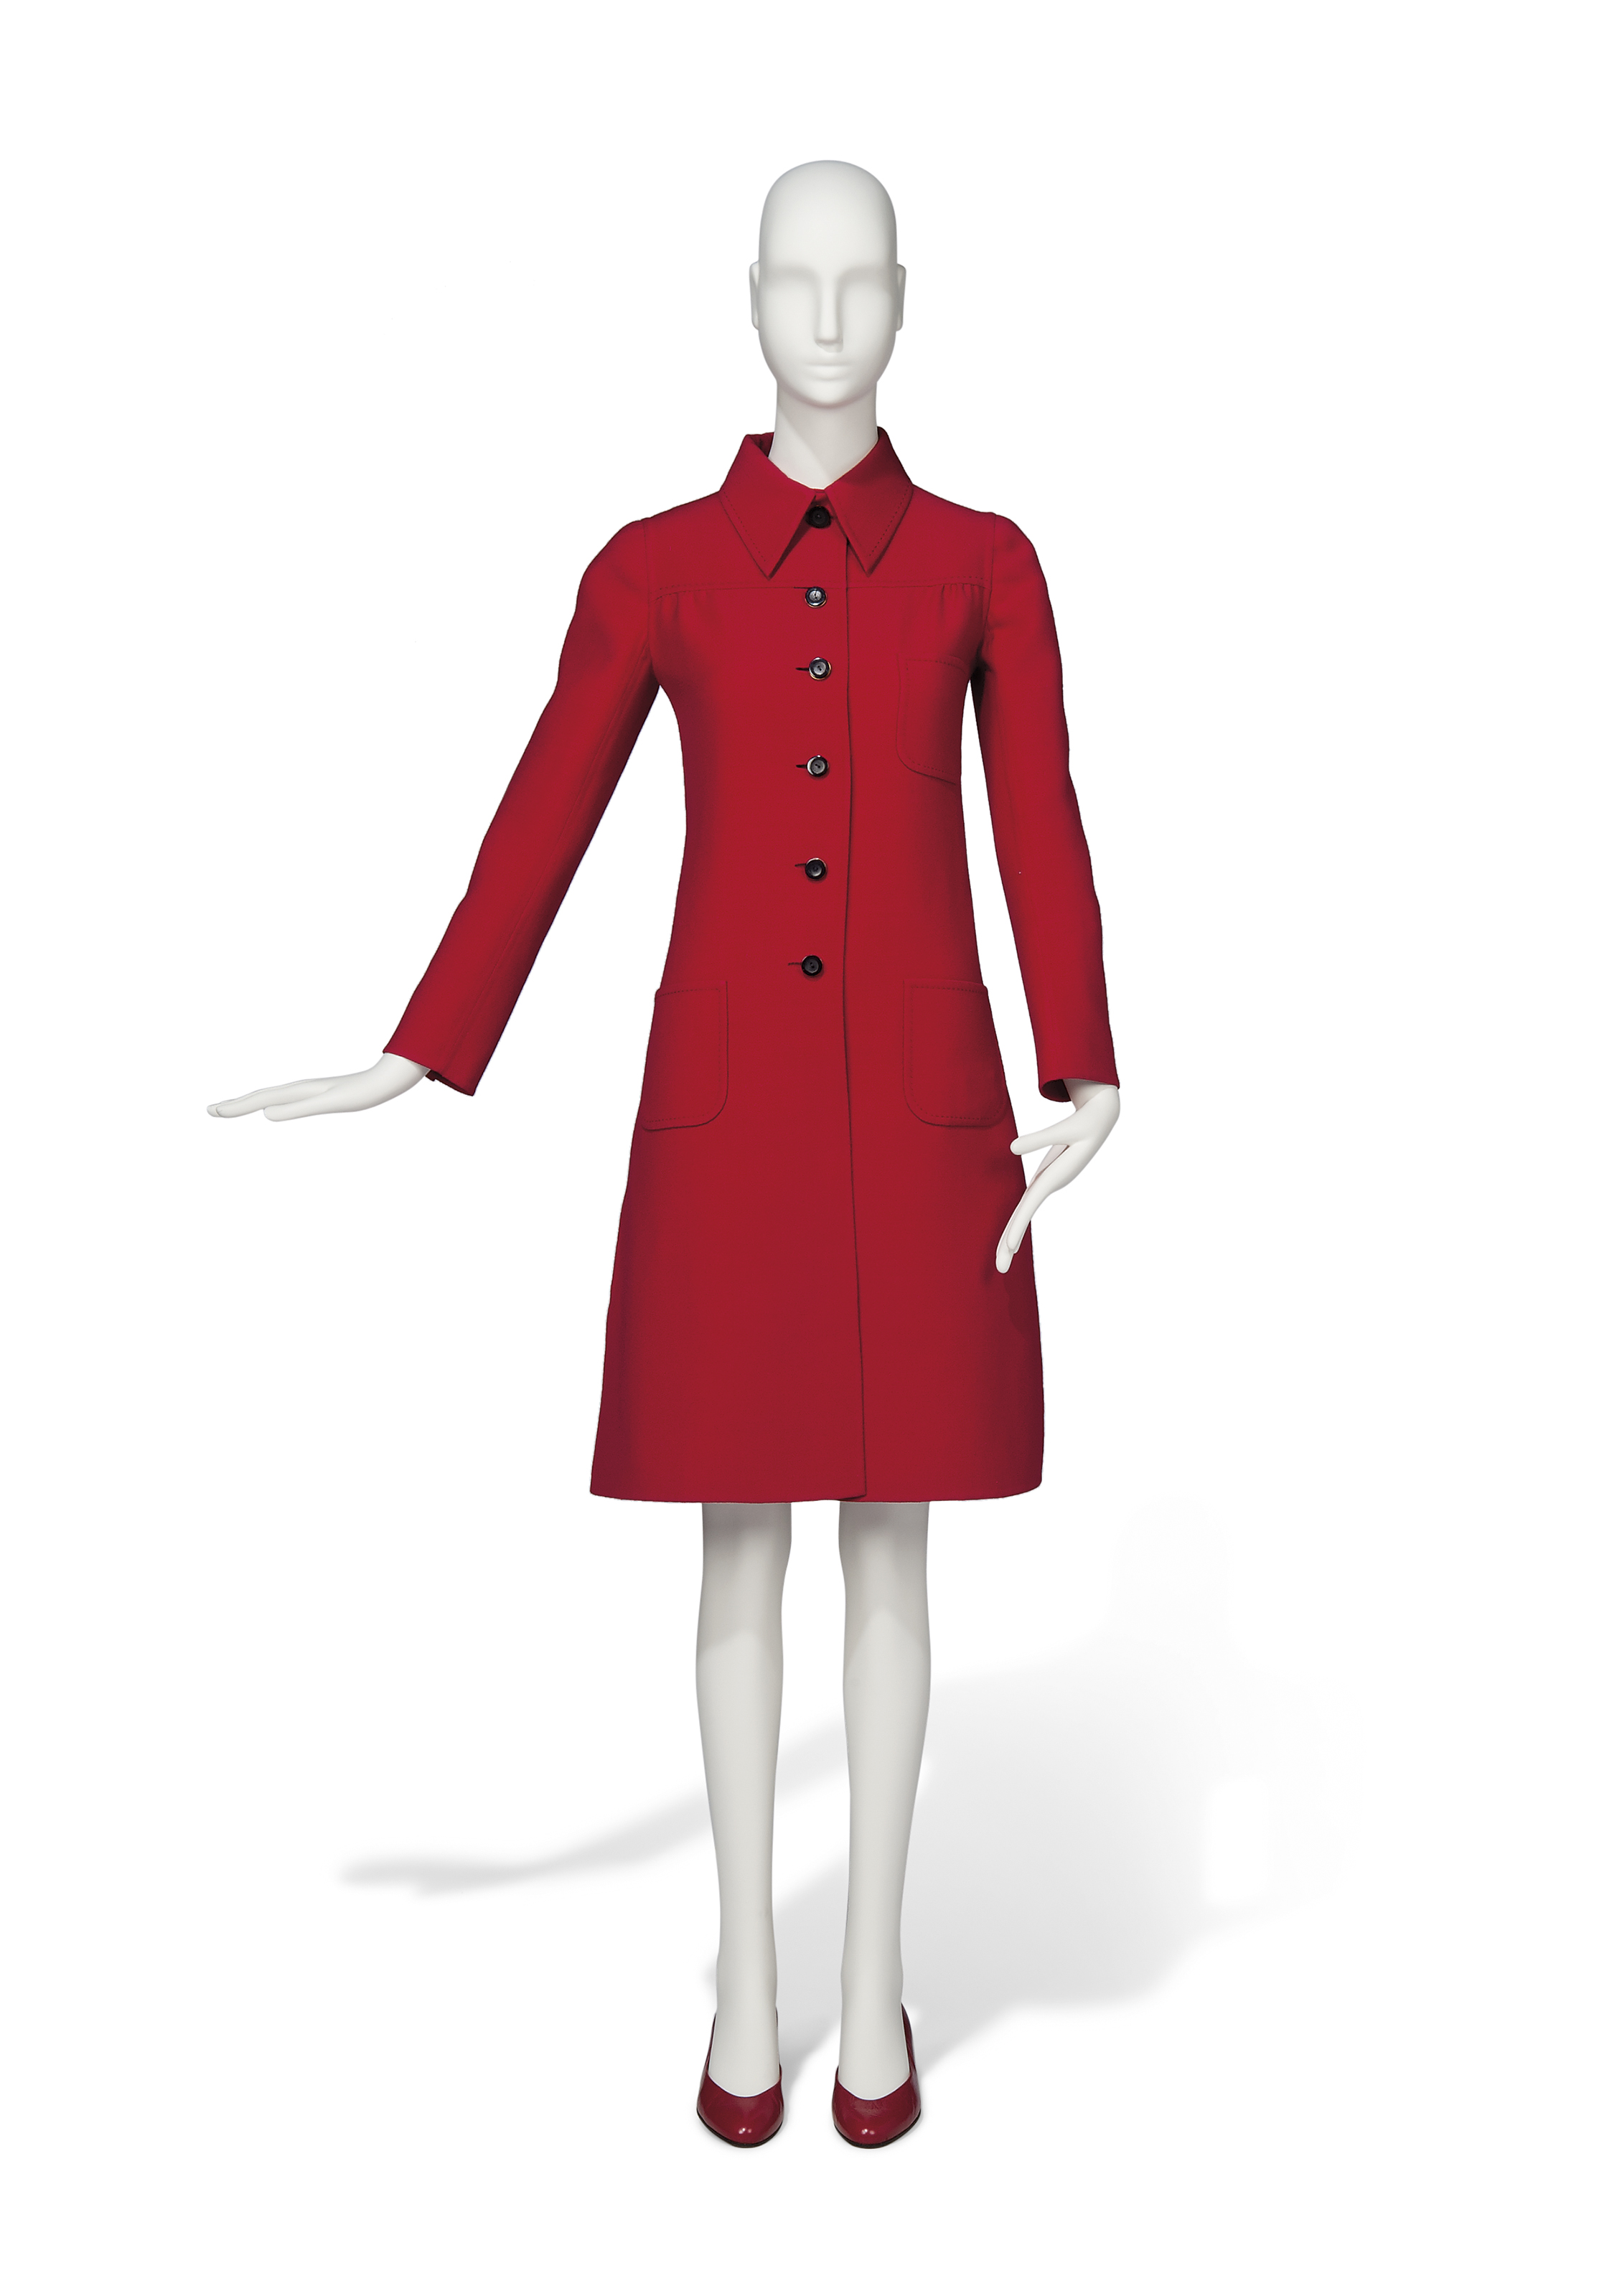 A RED DRESS COAT